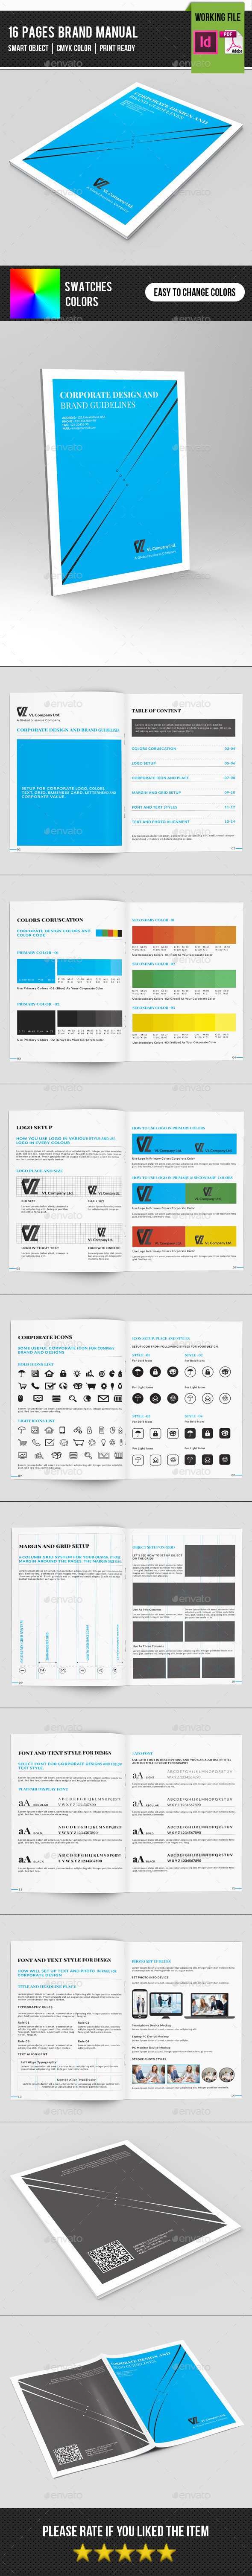 GraphicRiver Brand Manual Template-V01 11868930